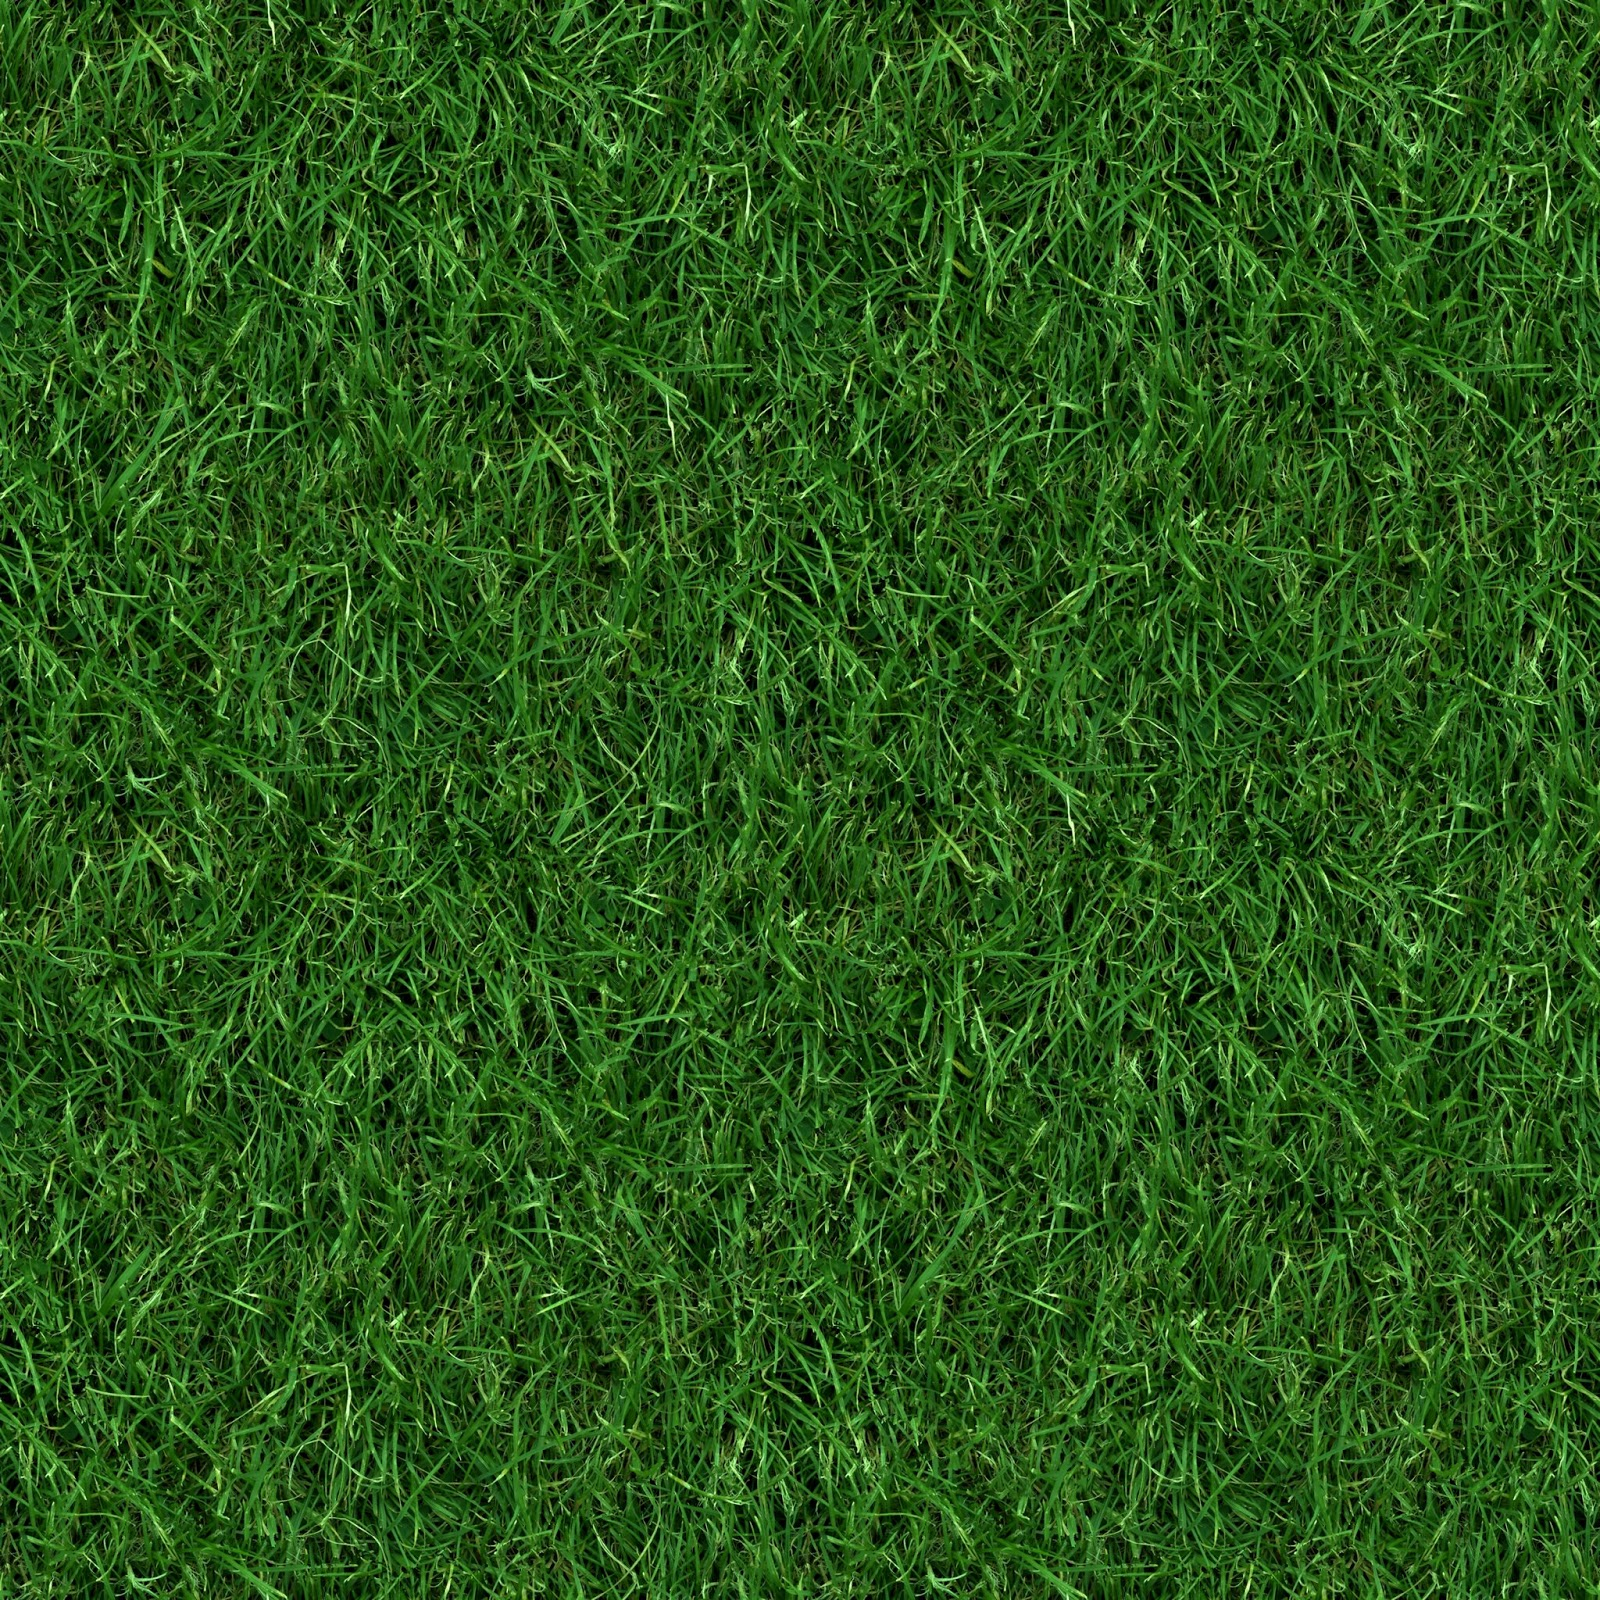 (GRASS 4) seamless turf lawn green ground field texture